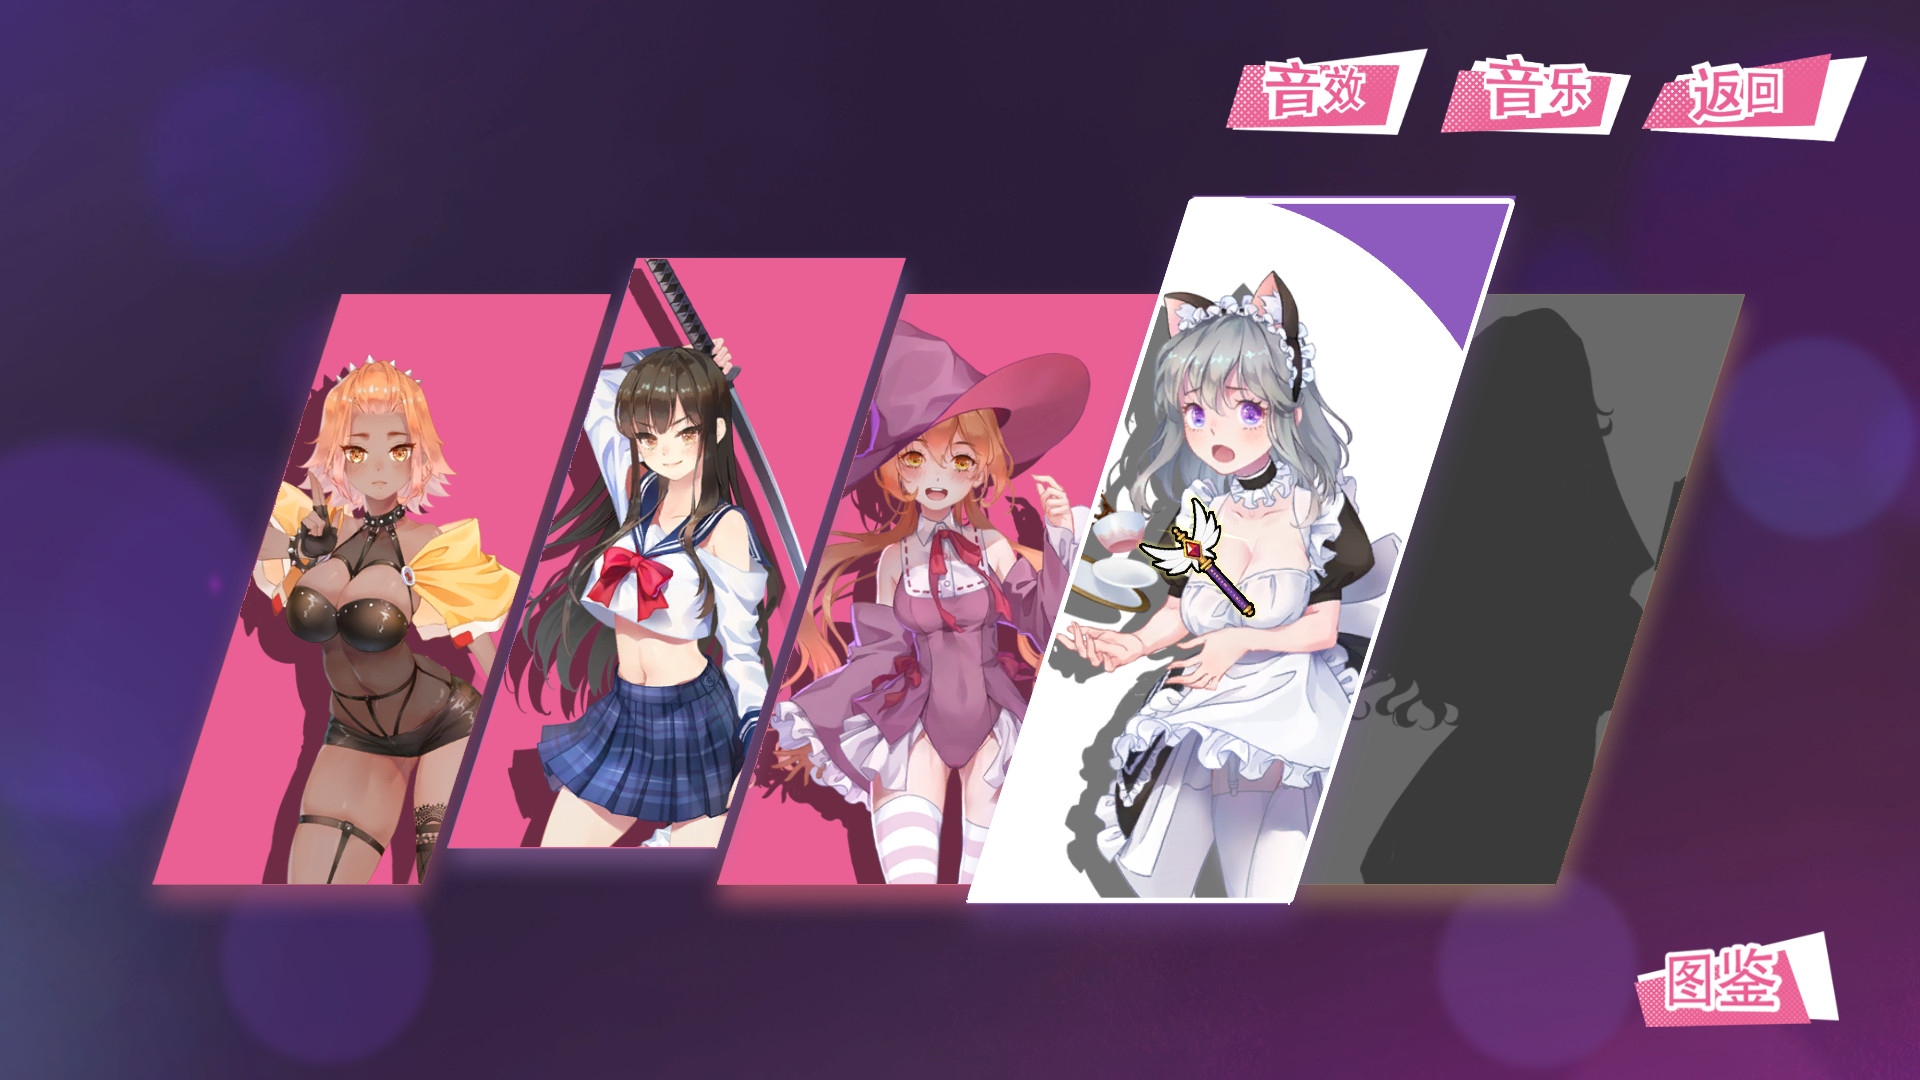 Find the best laptop for 符文女孩/Rune Girl